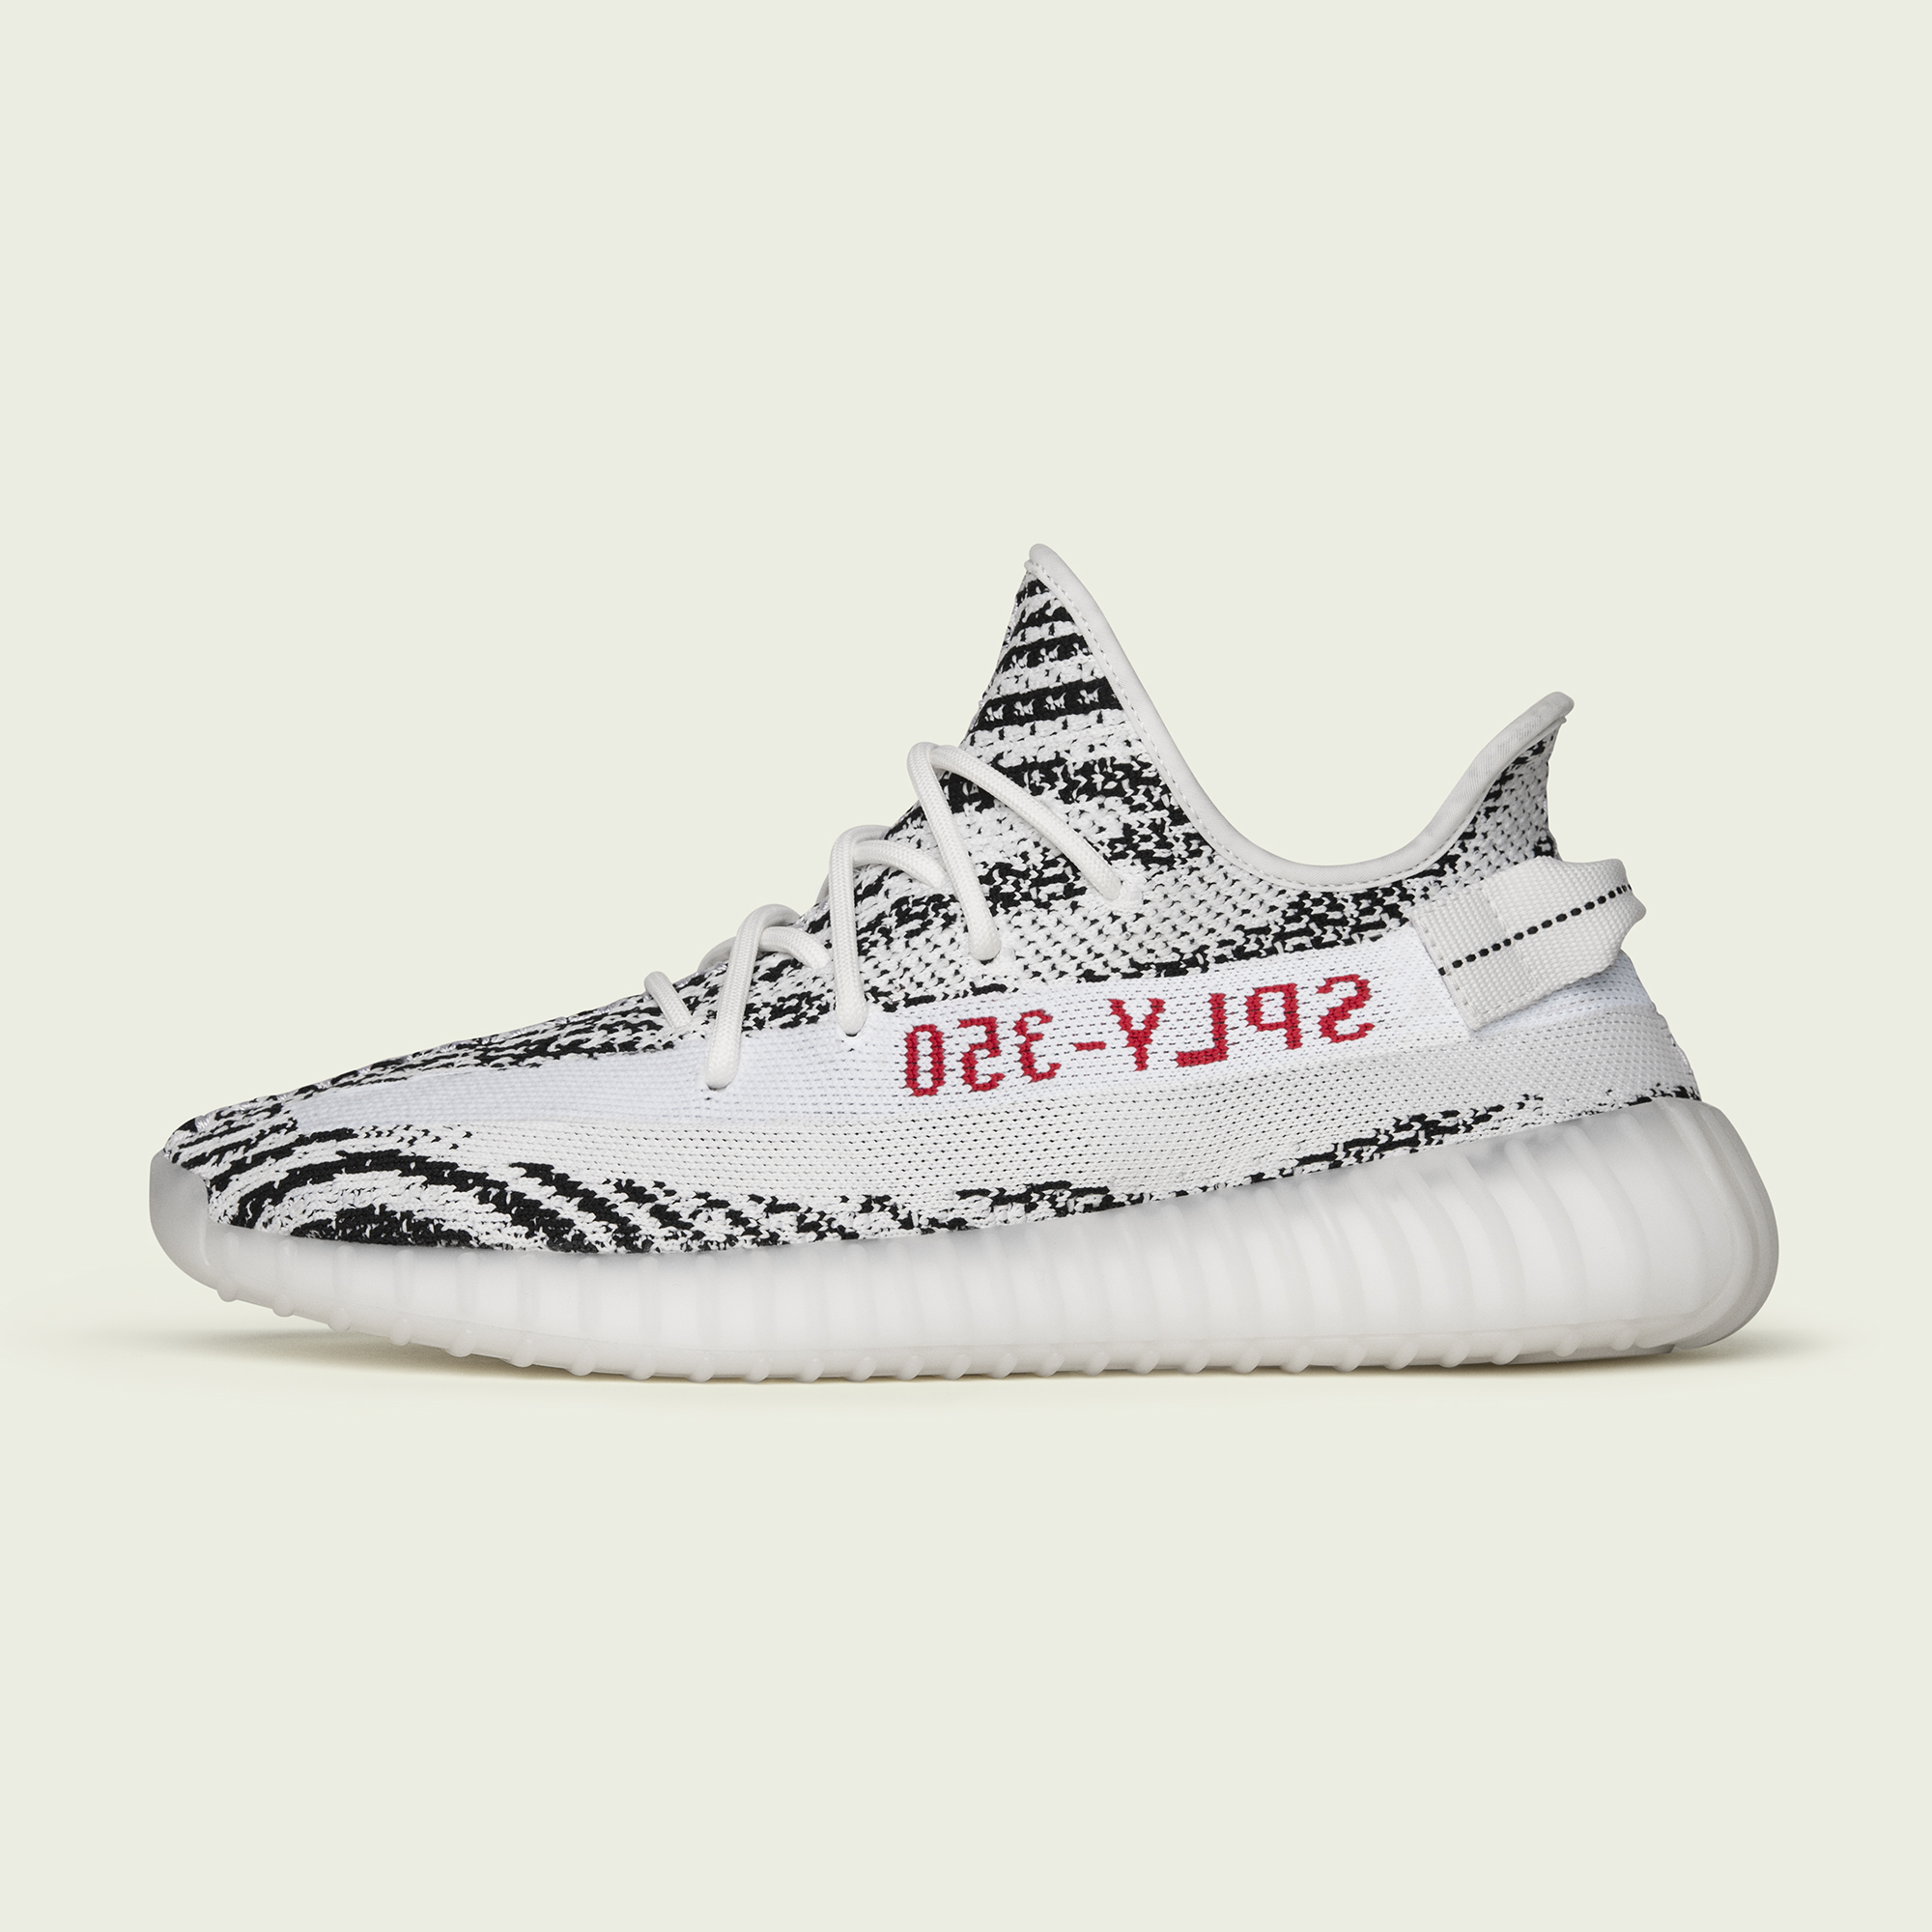 adidas Yeezy Boost 350 V2 Infant (Cream White) BB6373 Store